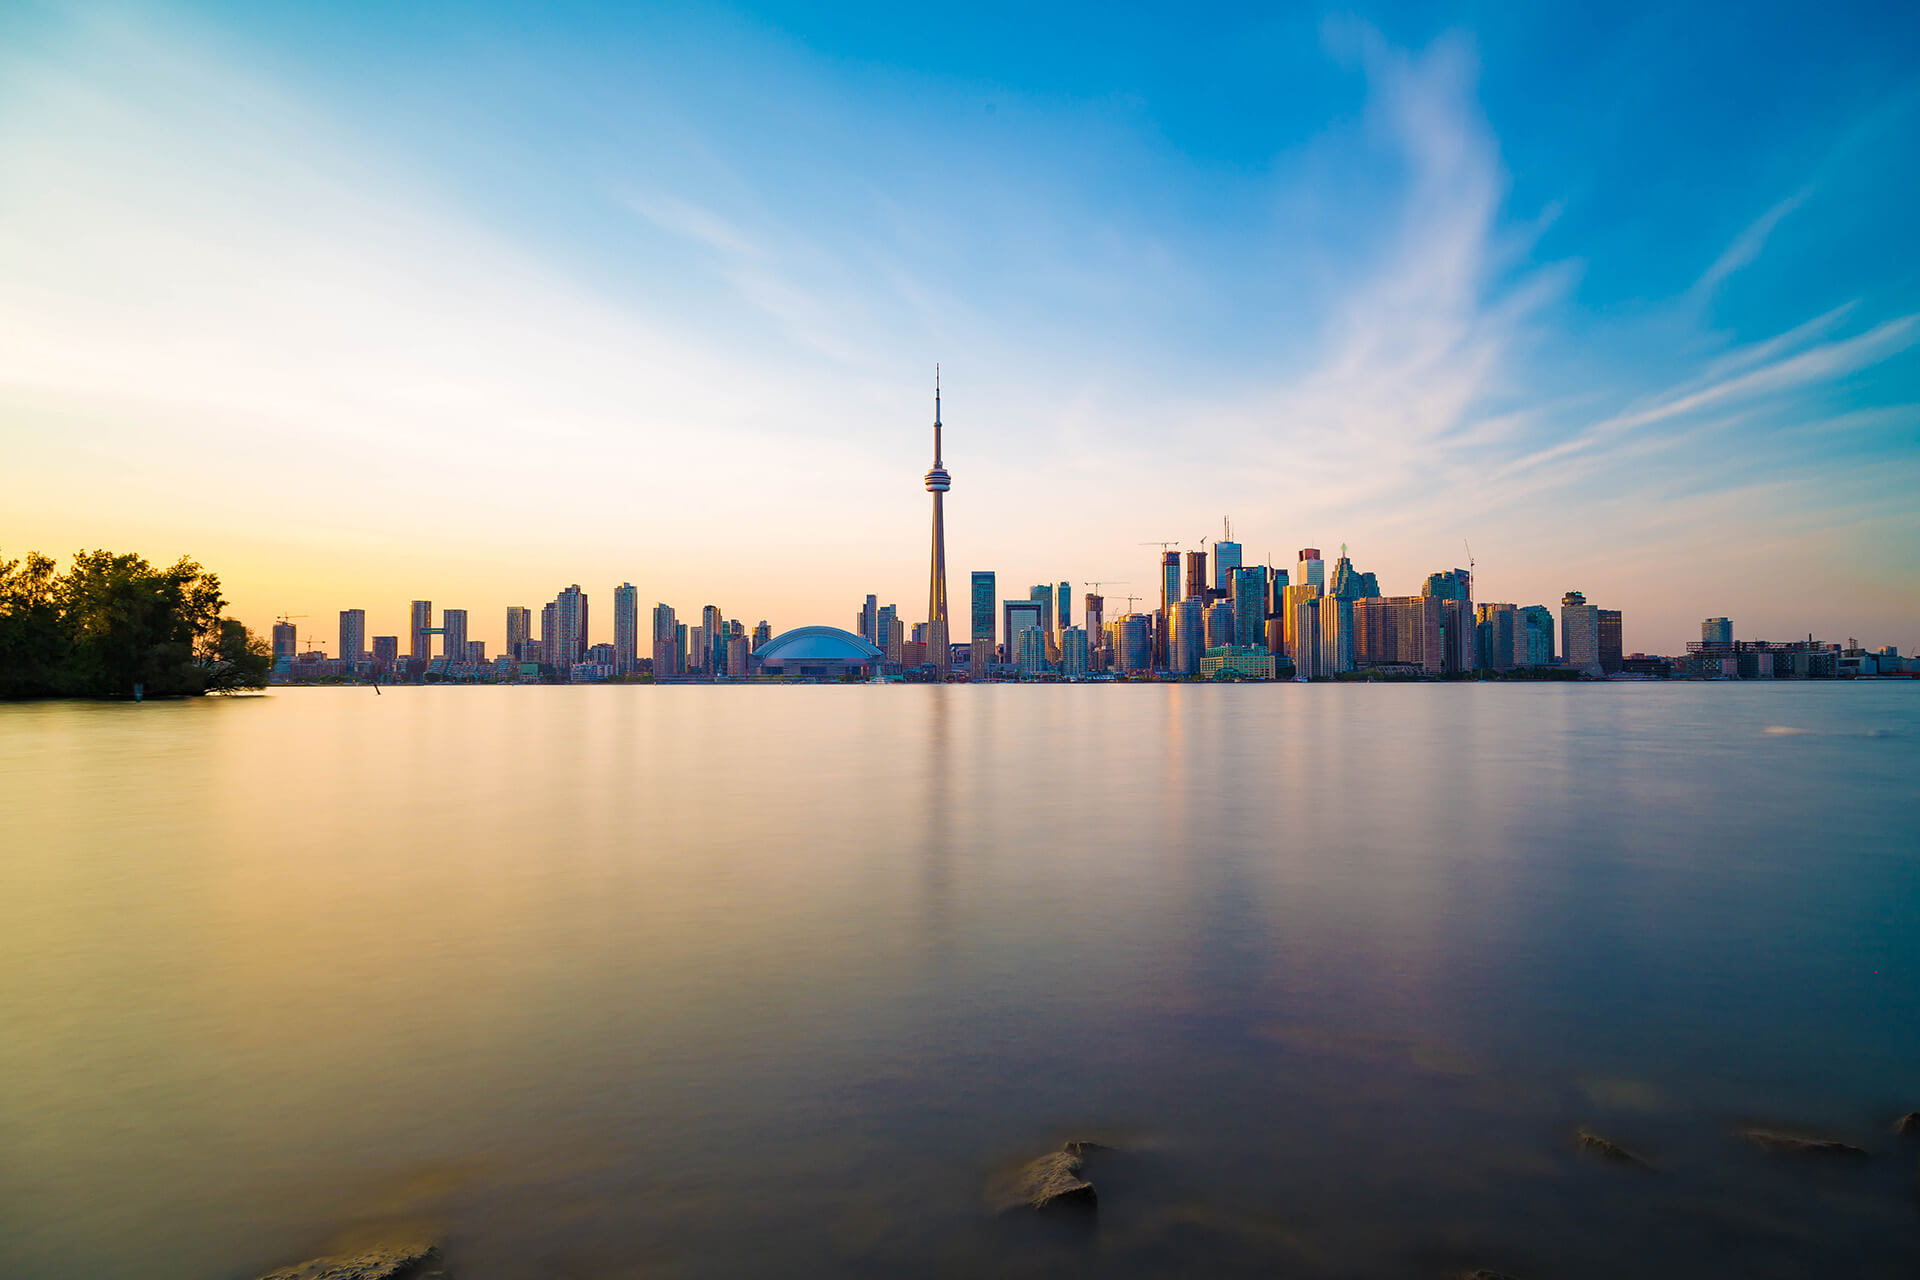 Image of the Toronto skyline